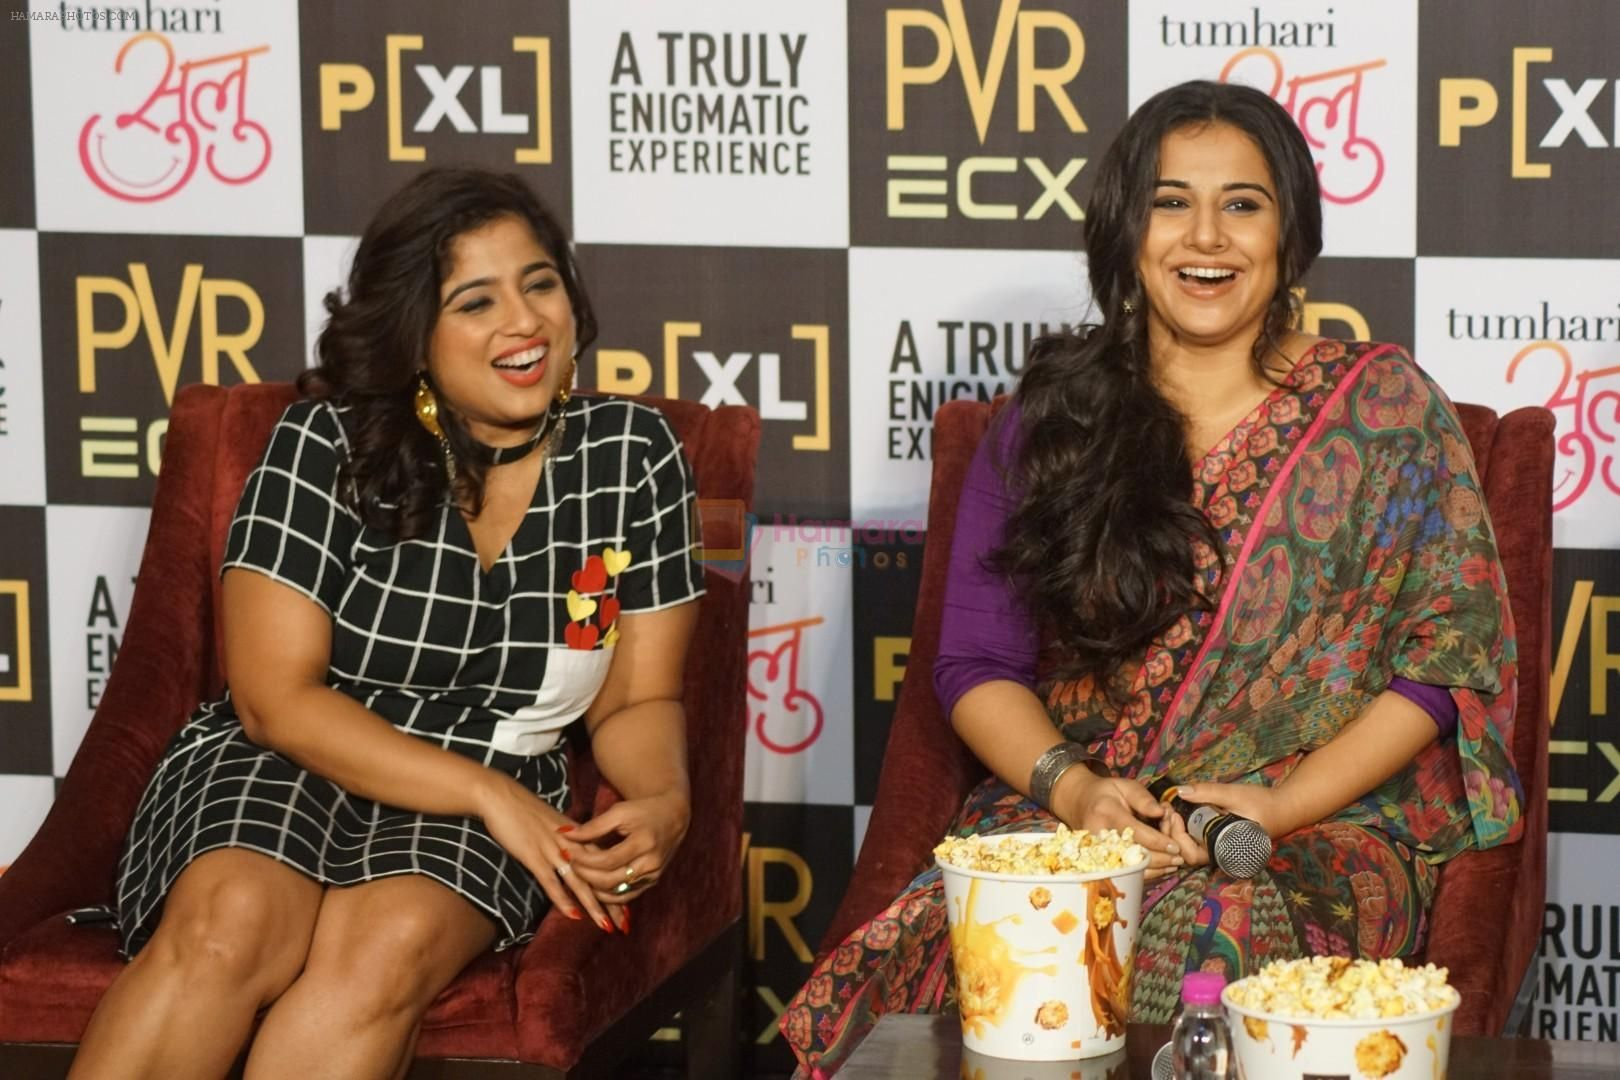 RJ Malishka During the Promotions of Tumhari Sulu